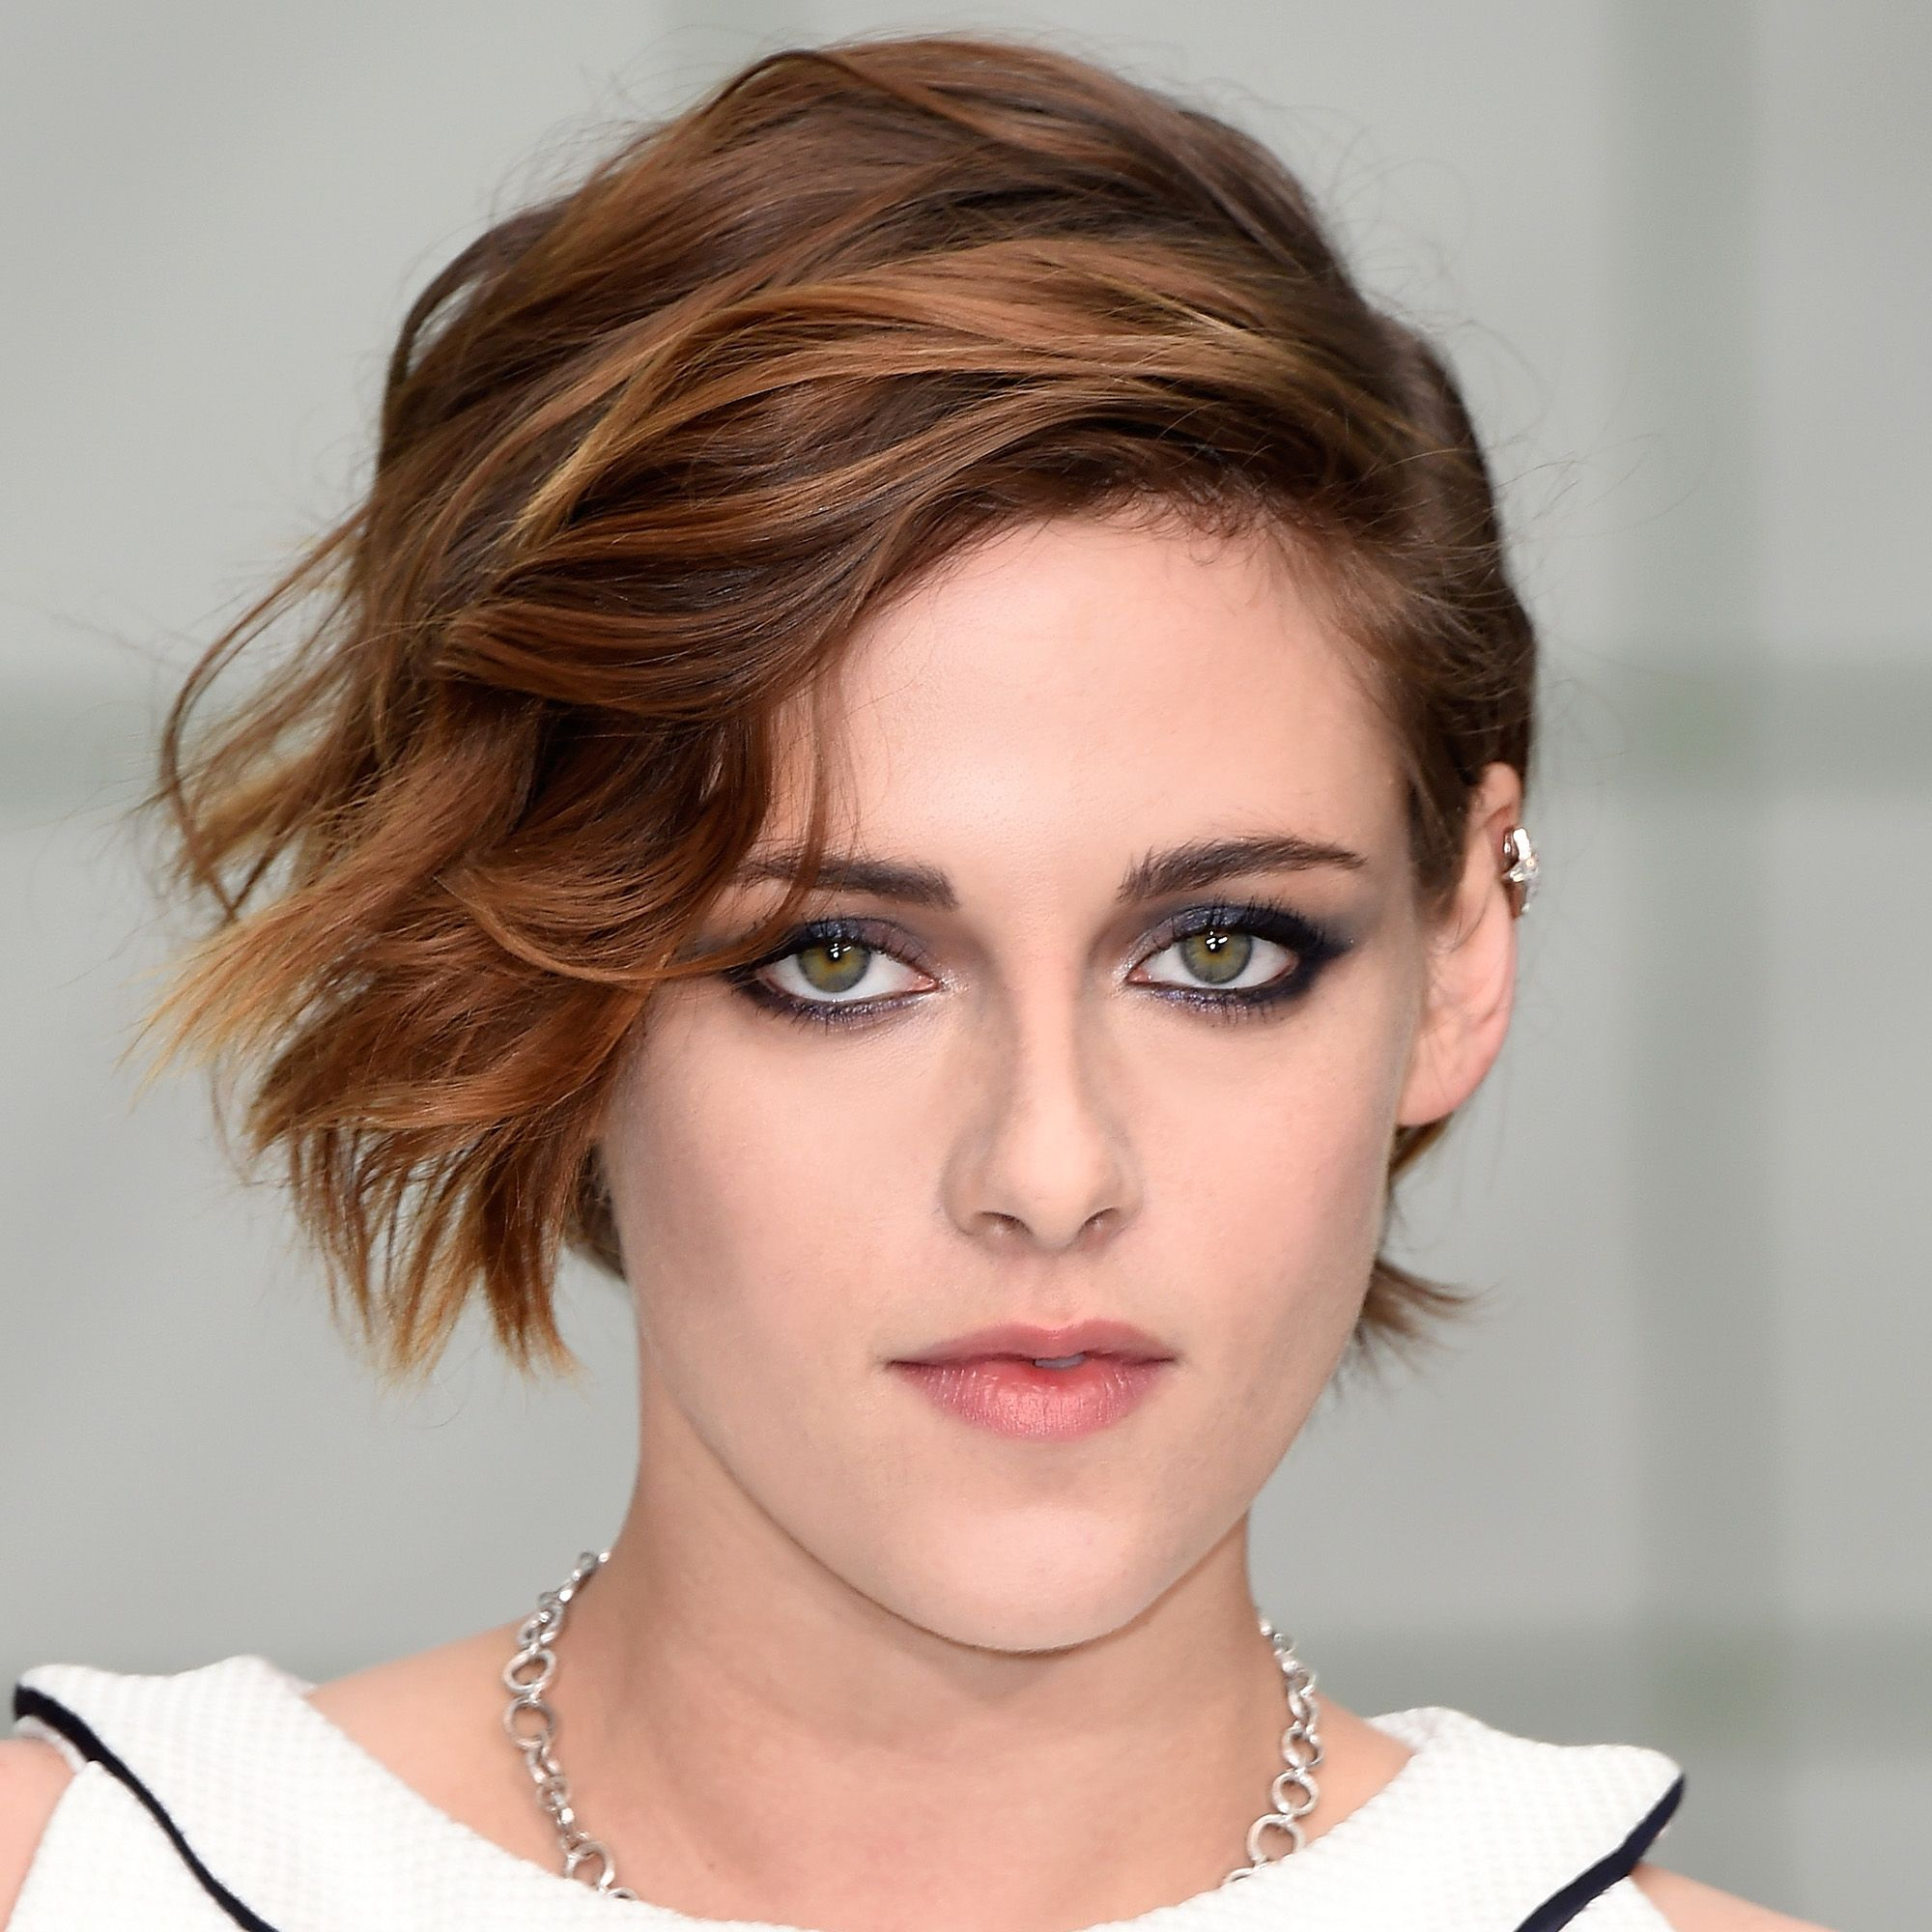 PARIS, FRANCE - JANUARY 27:  Kristen Stewart attends the Chanel show as part of Paris Fashion Week Haute Couture Spring/Summer 2015 on January 27, 2015 in Paris, France.  (Photo by Pascal Le Segretain/Getty Images)